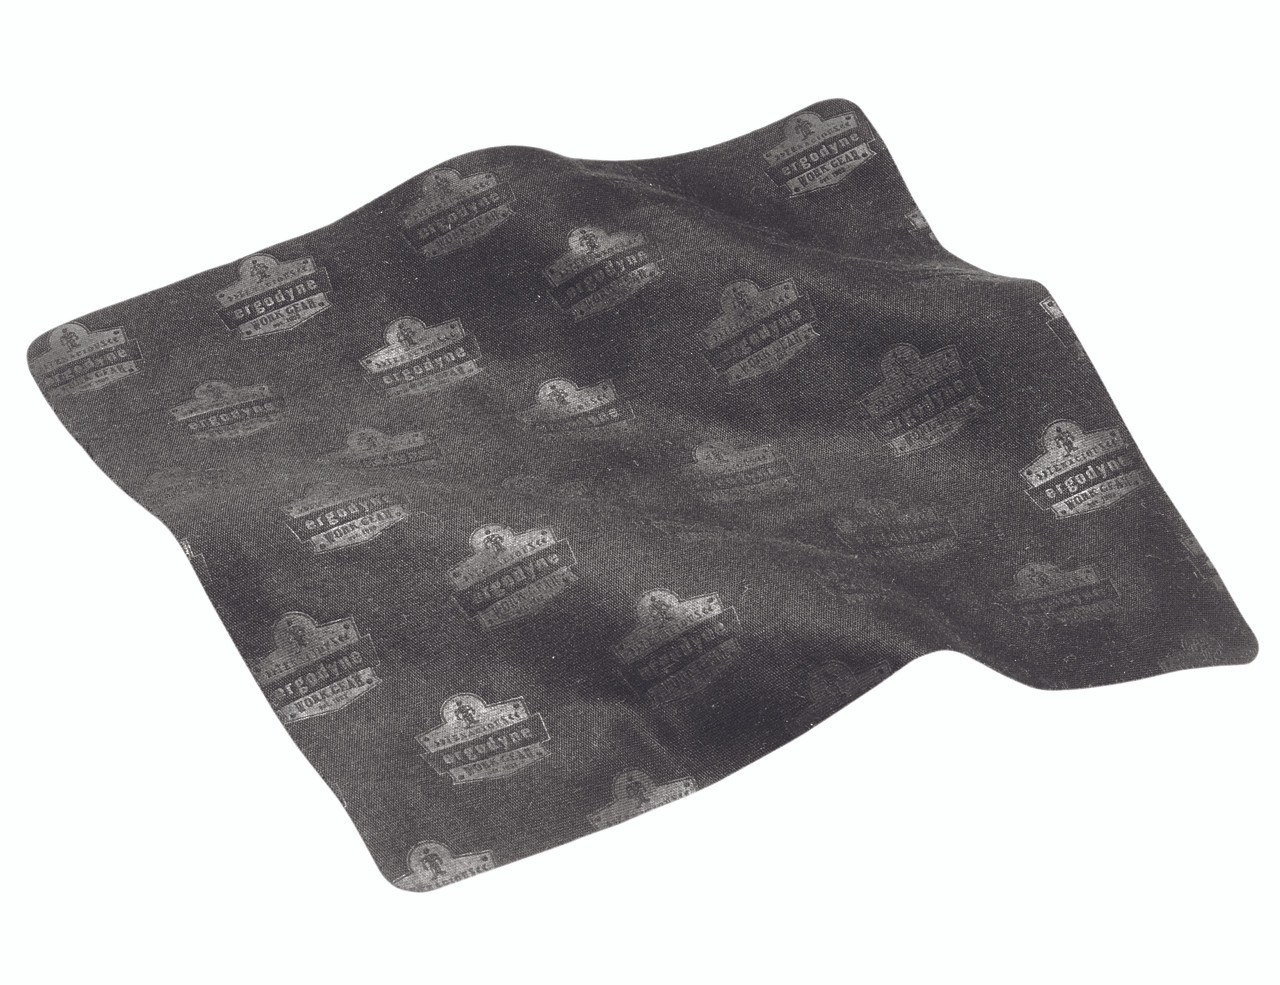 3c5cef1c0 Skullerz-3216-Eye Protection-19216-Microfiber Cleaning Cloth